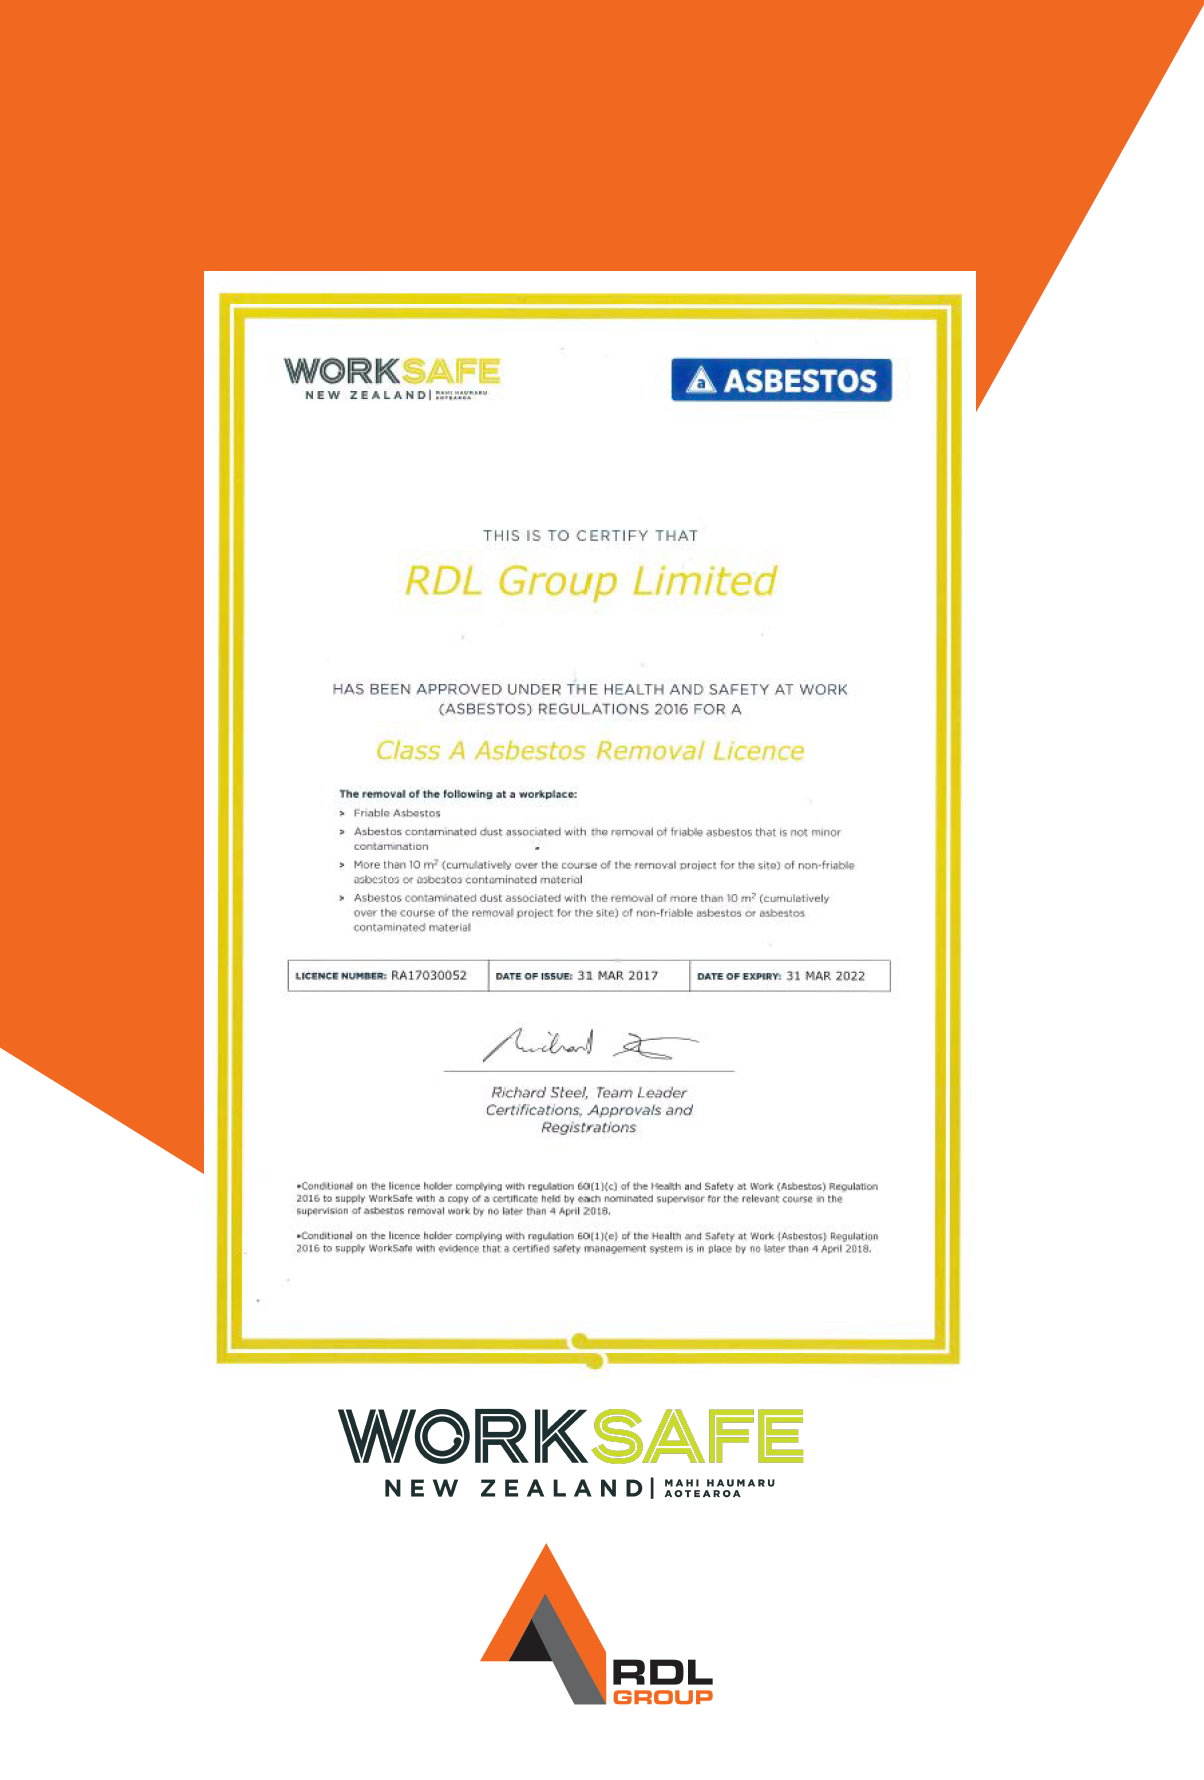 Asbestos Removal Class A Licence Awarded To Rdl Group